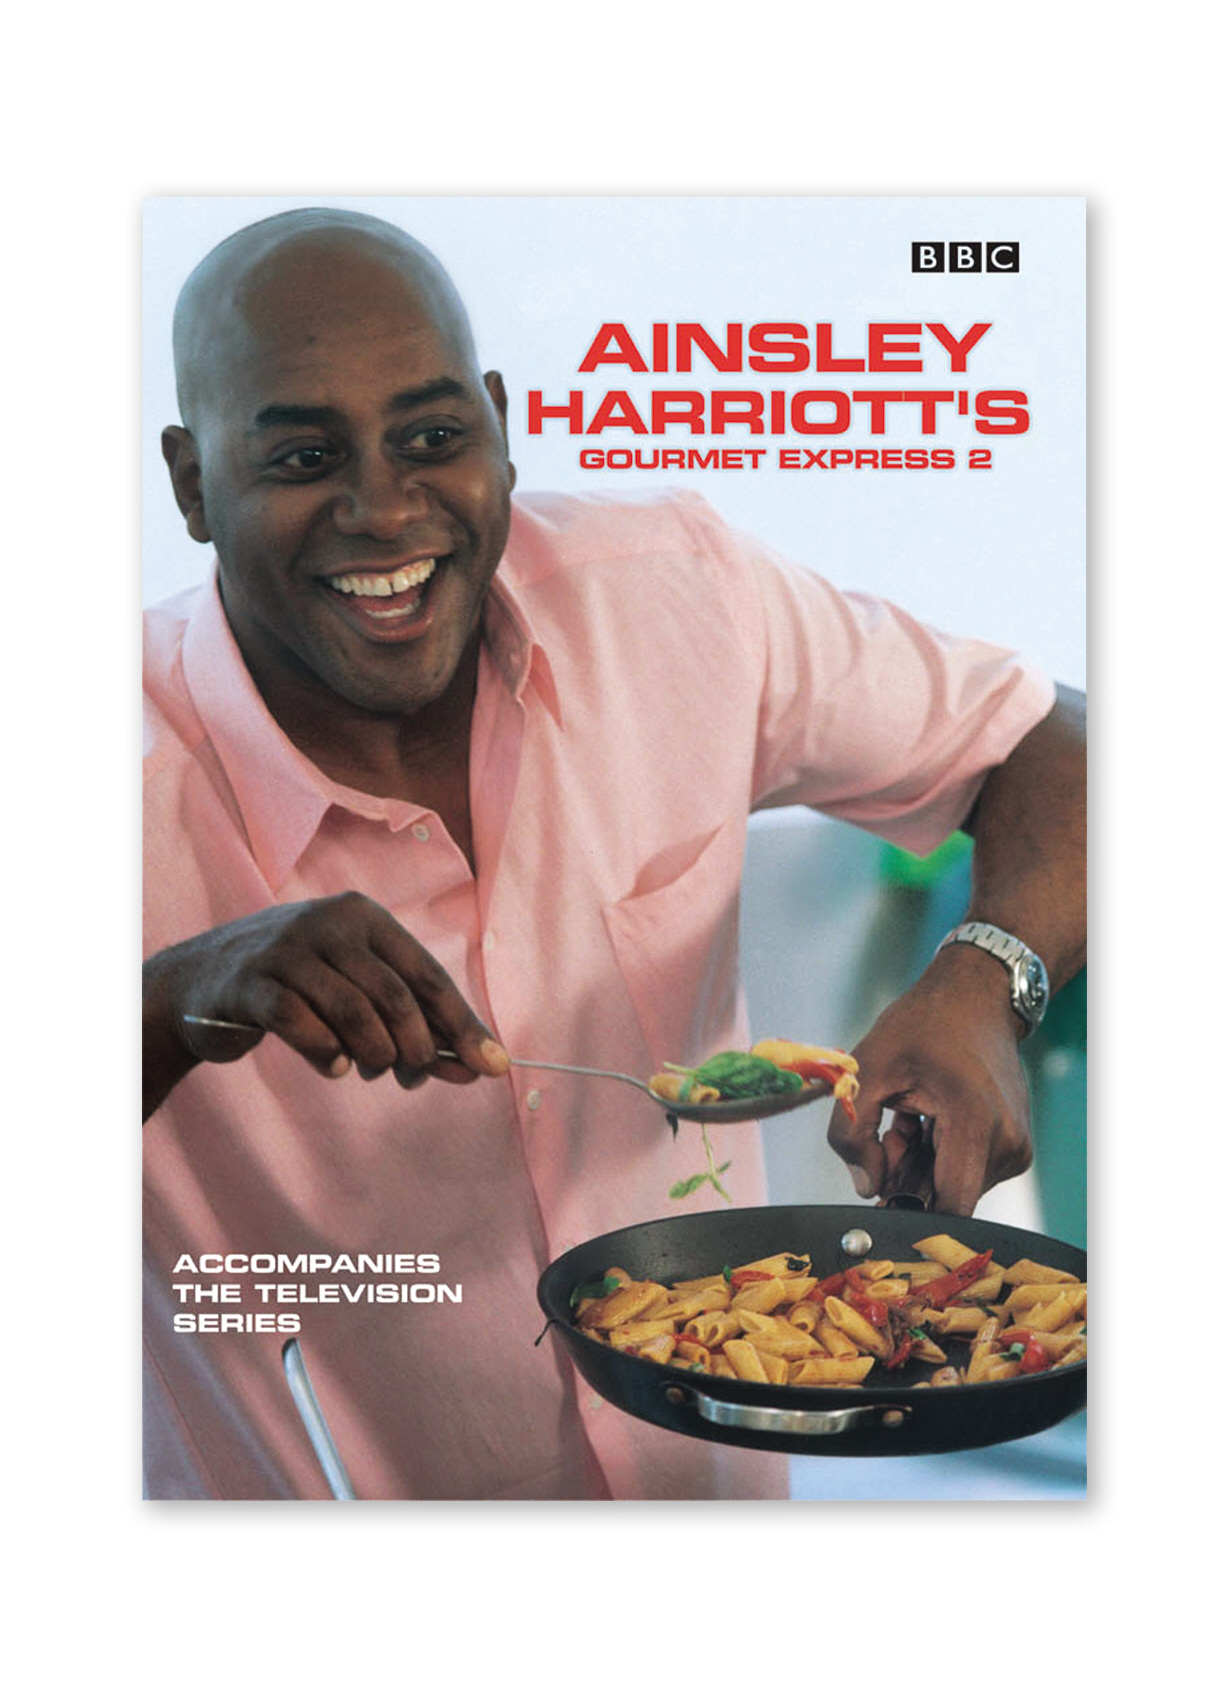 Ainsley Harriott's Gourmet Express 2